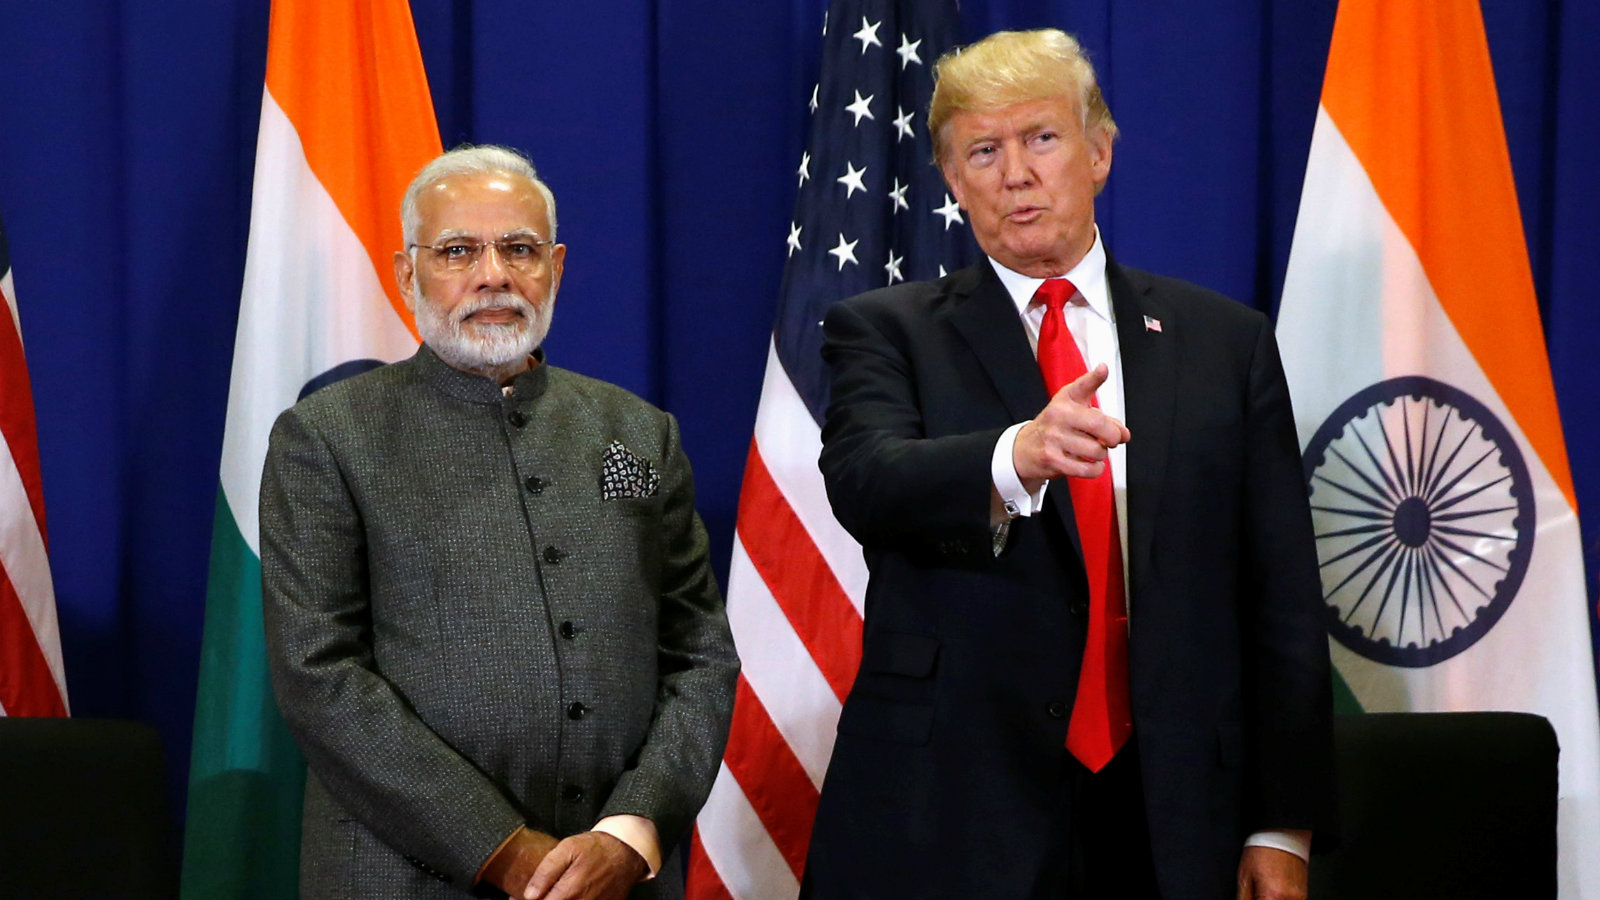 U.S. President Donald Trump holds a bilateral meeting with India's Prime Minister Narendra Modi alongside the ASEAN Summit in Manila, Philippines November 13, 2017.